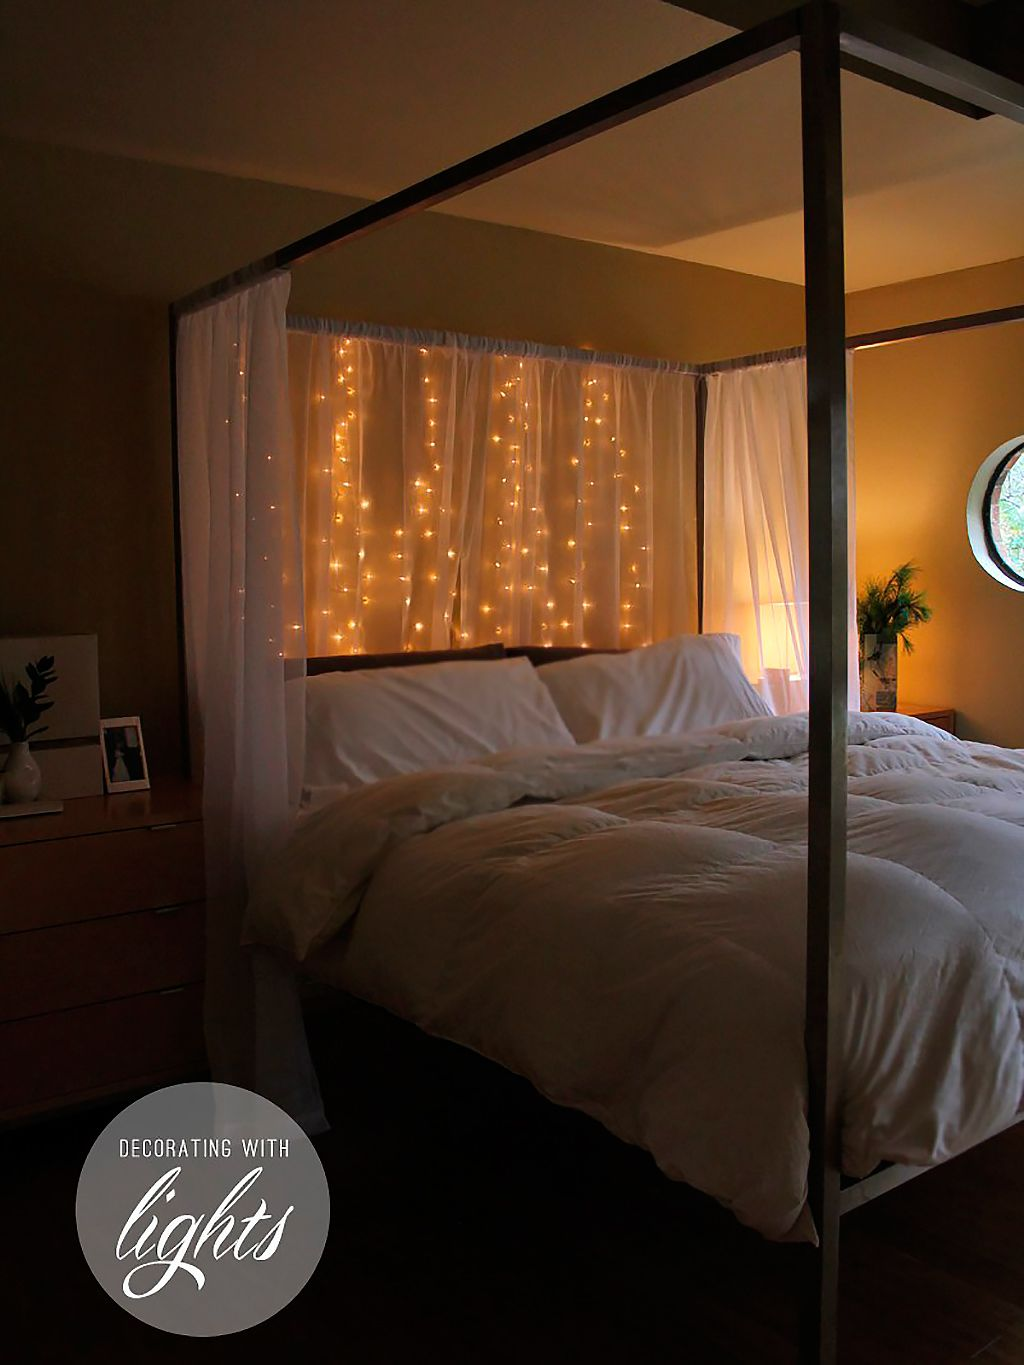 Luces Dormitorio Decorar El Dormitorio Con Guirnaldas De Luces